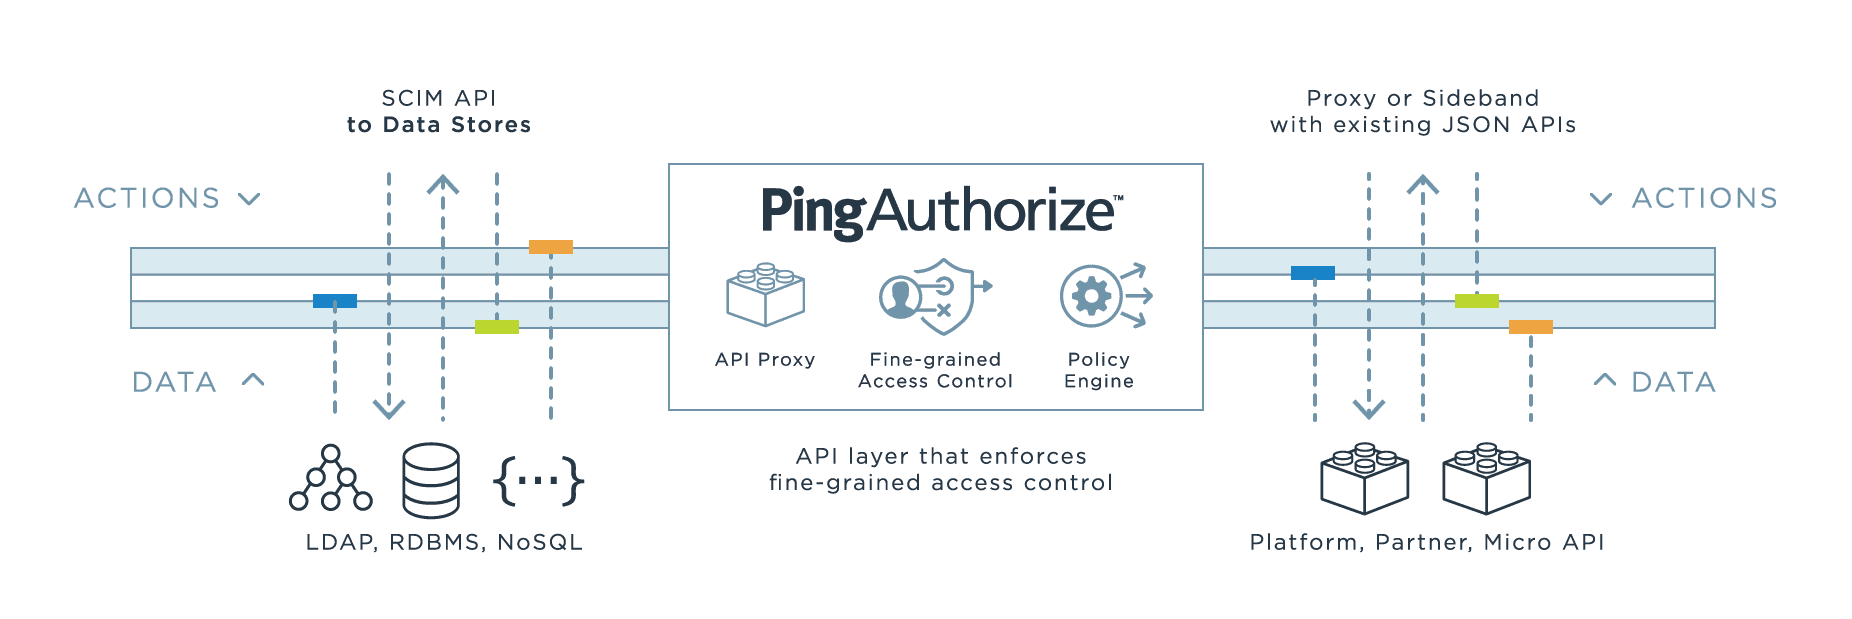 Diagram illustrating PingAuthorize and the API layer that enforces fine-grained access control